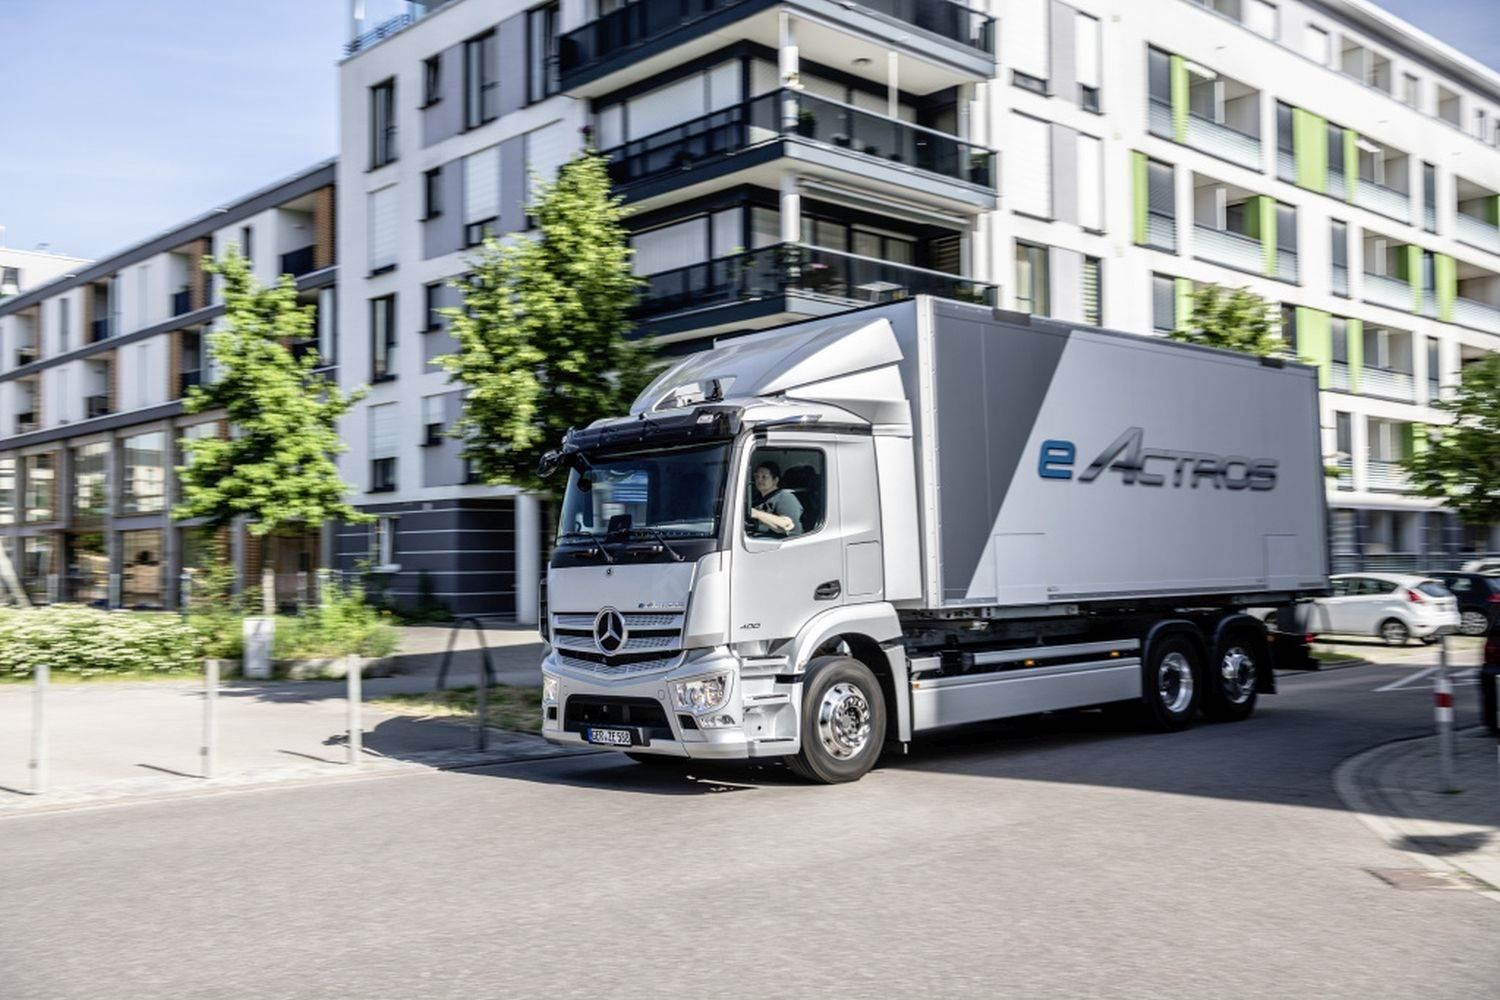 World premiere of the new eActros;Daimler Trucks;A new truck for a new era: Mercedes-Benz eActros celebrates its ;Daimler Global MediaSite;06 - 2021;World Premiere of the Mercedes-Benz eActros 2021;eActros;Trucks;Mercedes-Benz;MediaSite;Brands & Products;Events;Press Kits sorted by years;Press Releases sorted by years;2021